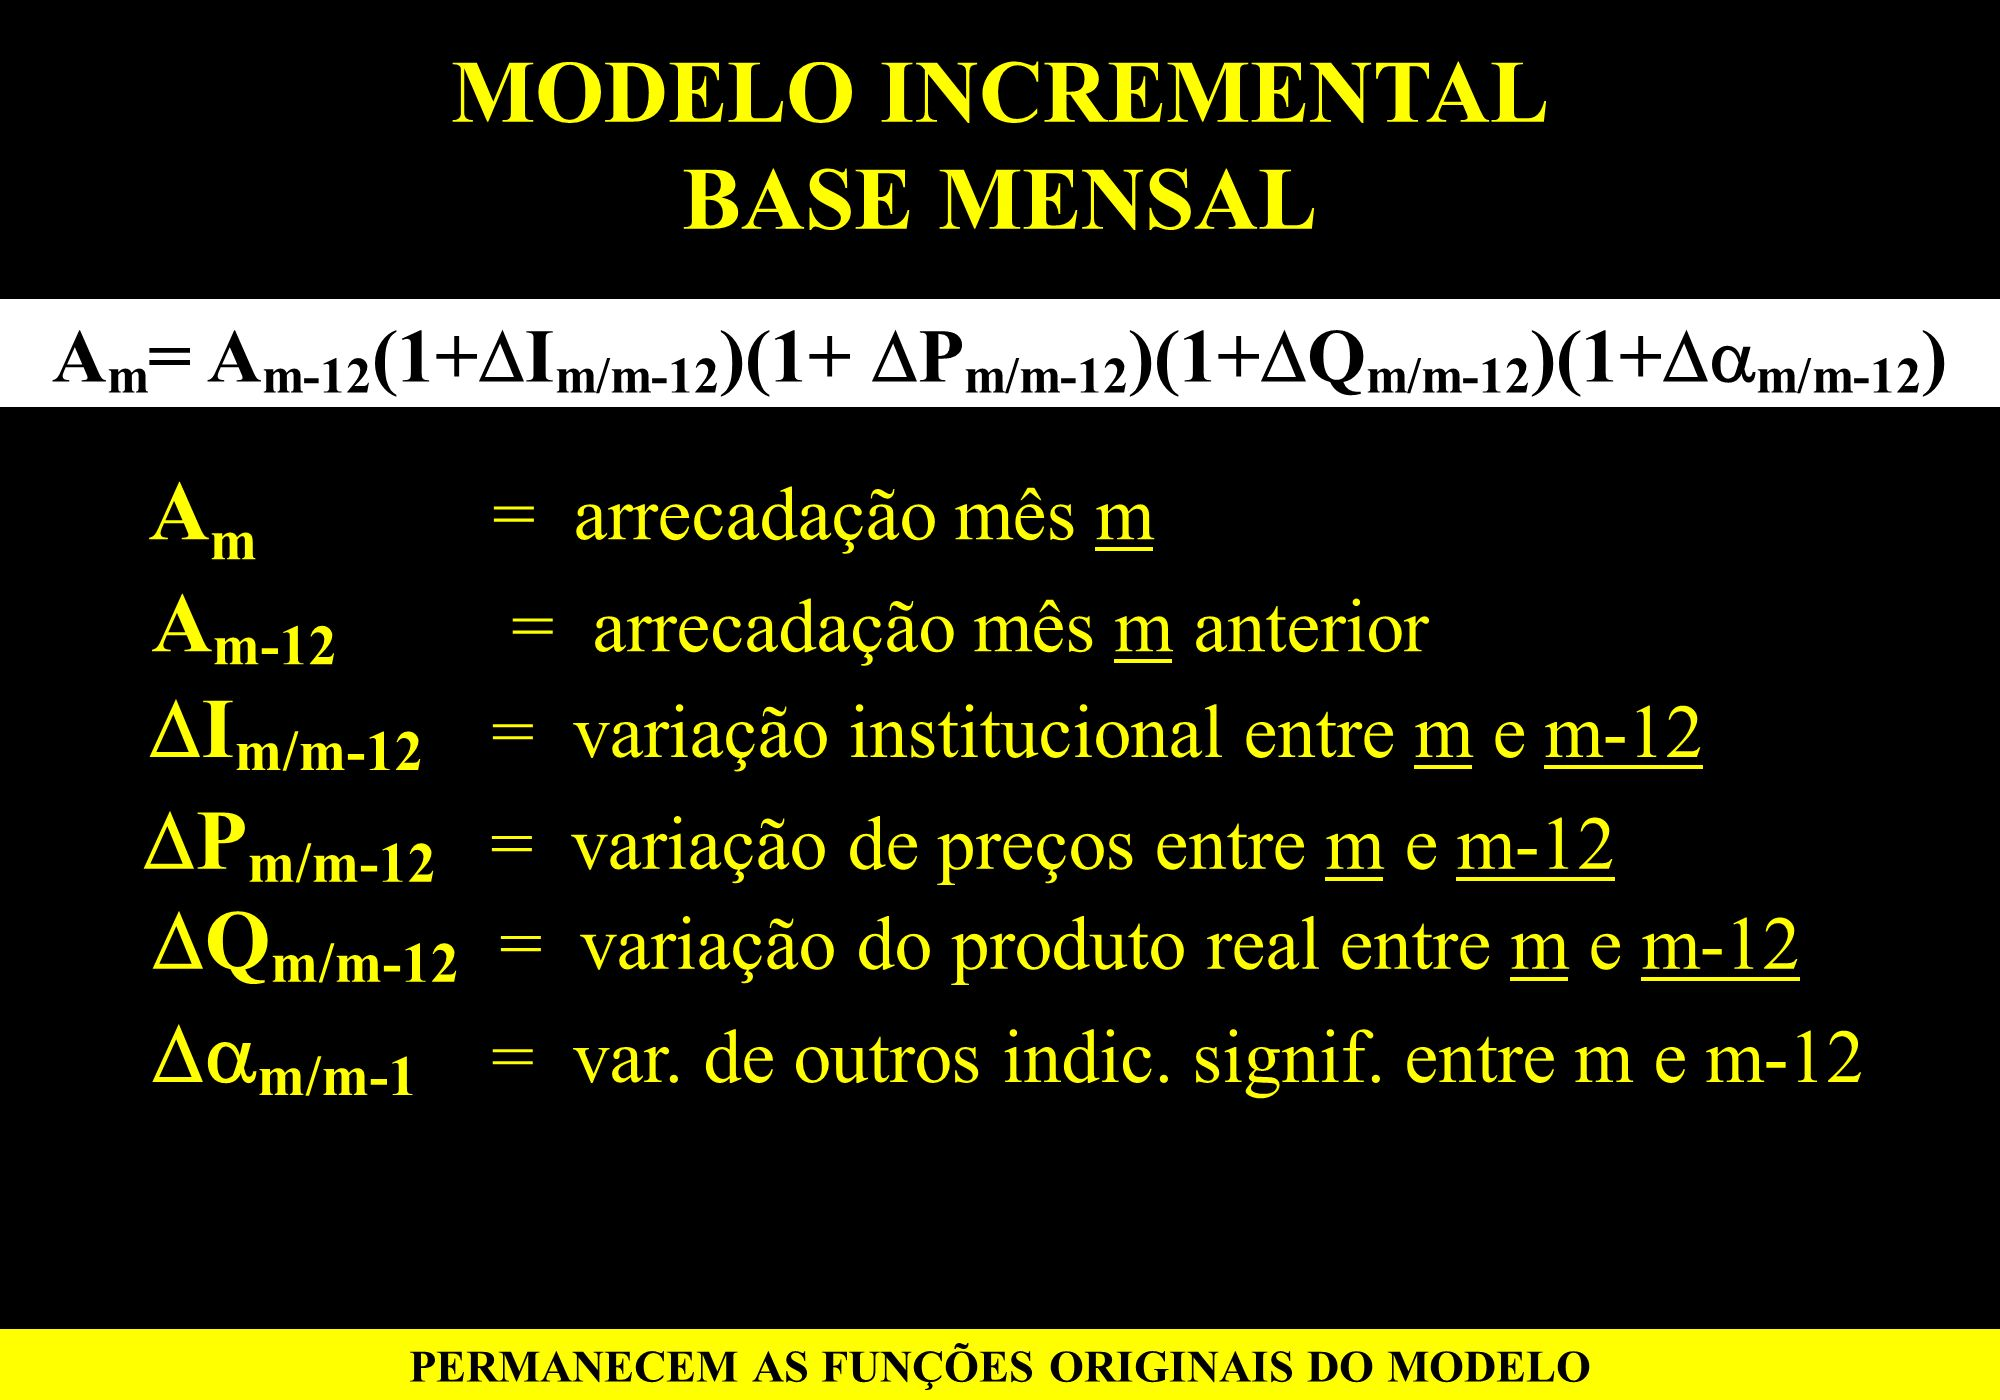 MODELO INCREMENTAL BASE MENSAL A m = A m-12 (1+ I m/m-12 )(1+ P m/m-12 )(1+ Q m/m-12 )(1+ m/m-12 ) PERMANECEM AS FUNÇÕES ORIGINAIS DO MODELO A m = arr